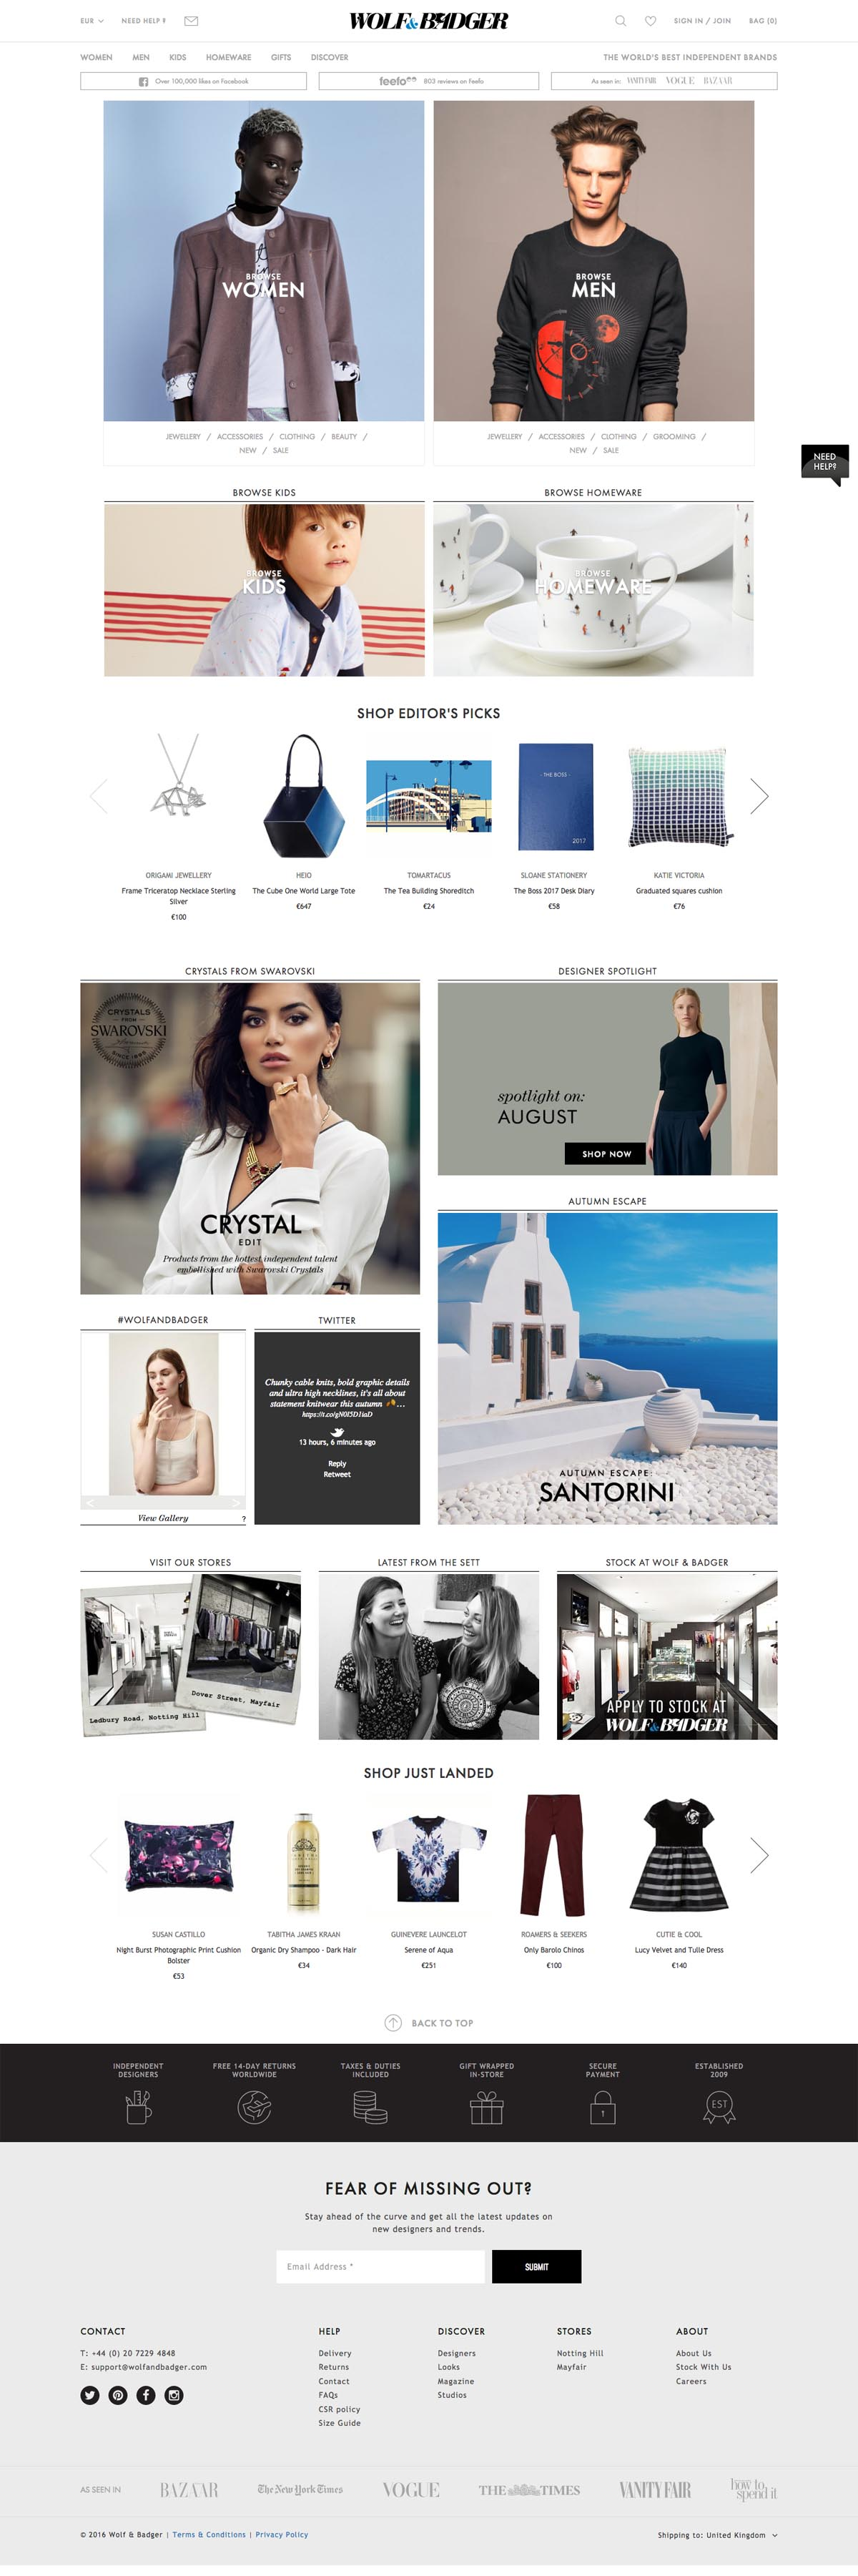 eCommerce website: Wolf and Badger